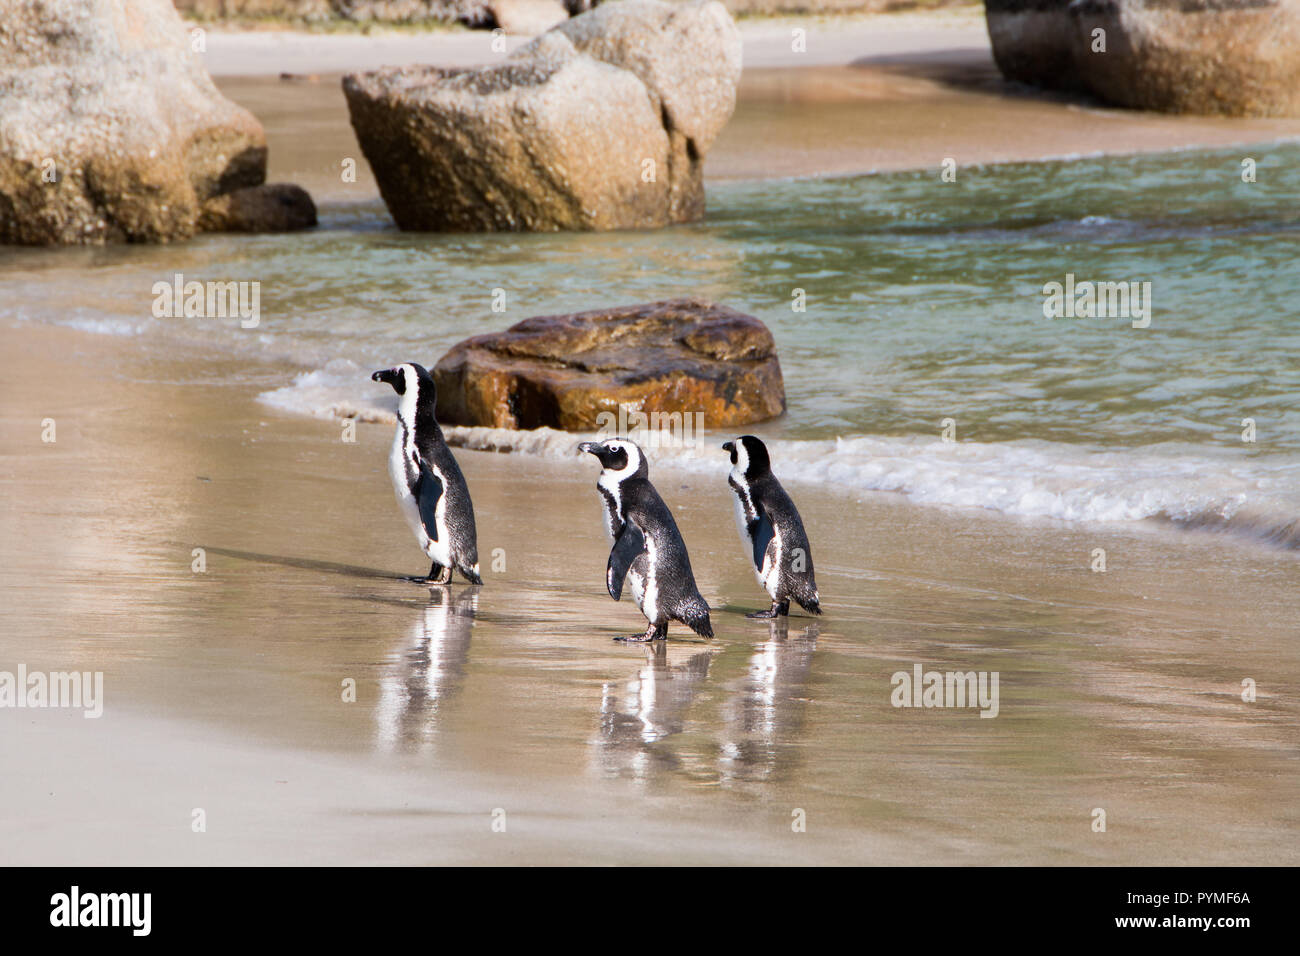 Three Jackass penguins walking out of the water onto the beach side view with ocean in background and reflections on wet sand. - Stock Image